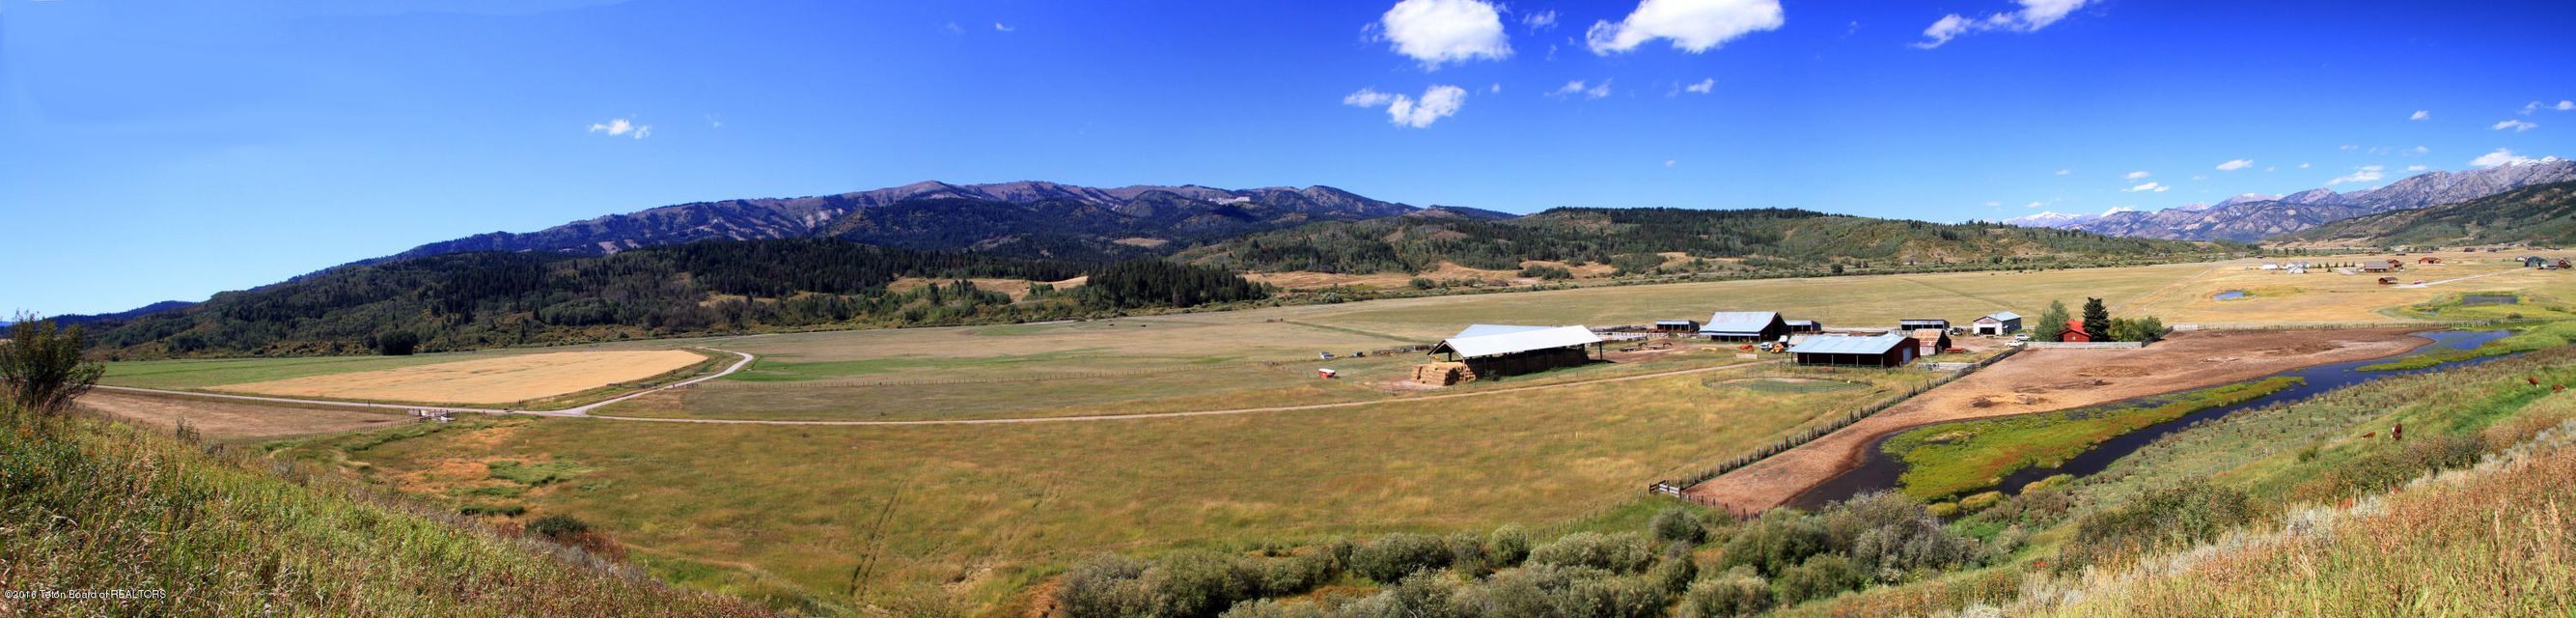 Additional photo for property listing at RISING TROUT RANCH Alpine, WY RISING TROUT RANCH Alpine, Wyoming,83128 États-Unis